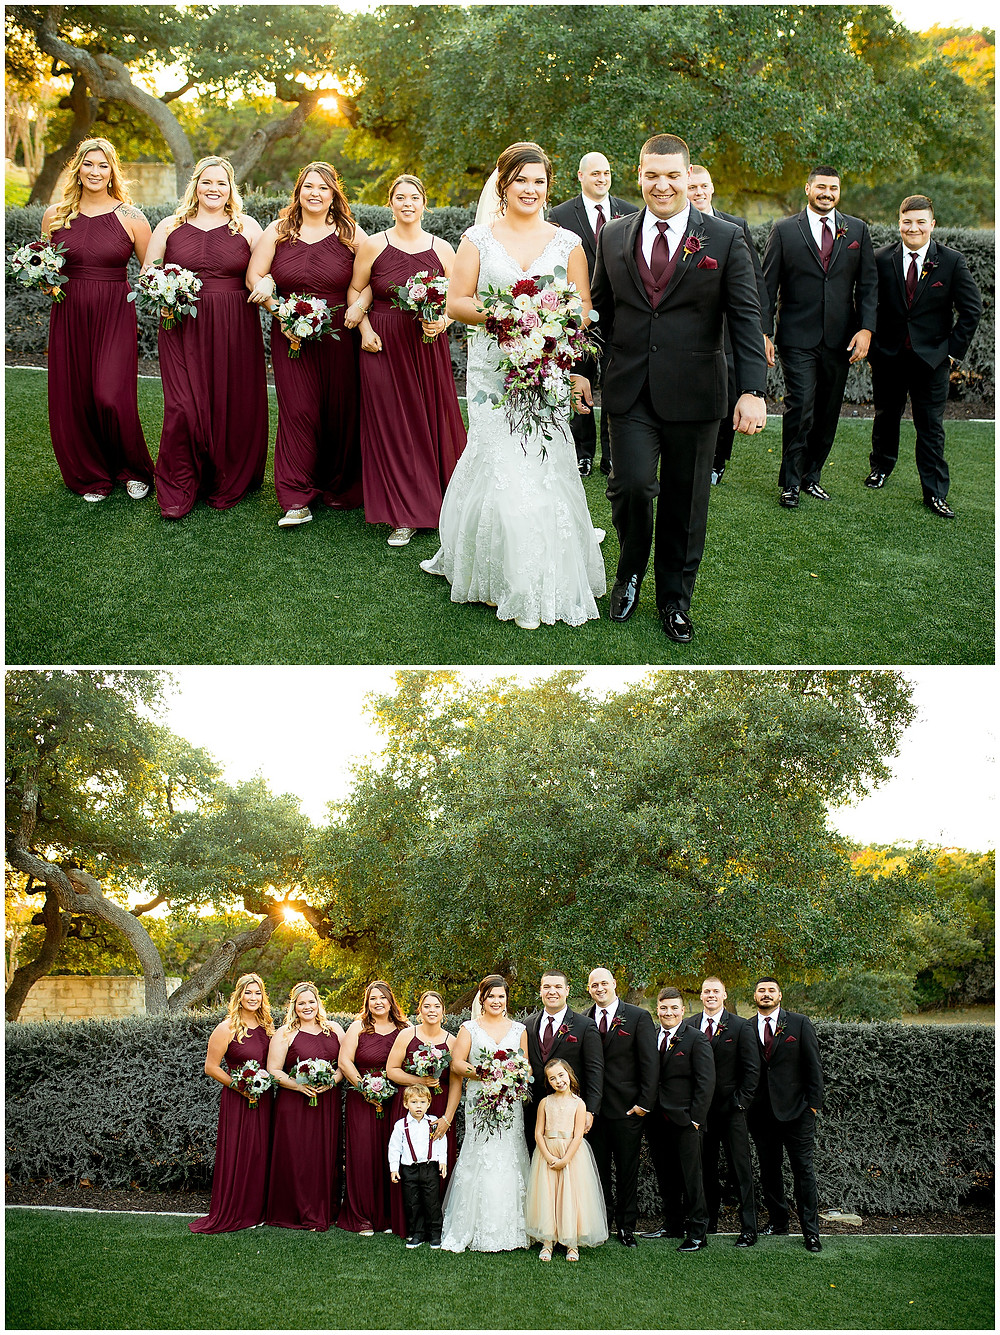 Boerne Wedding Photographer | Kendall Plantation Wedding | Snap Chic Photography | San Antonio Wedding Photographer | Kendall Plantation Photos | Boerne Wedding Venue